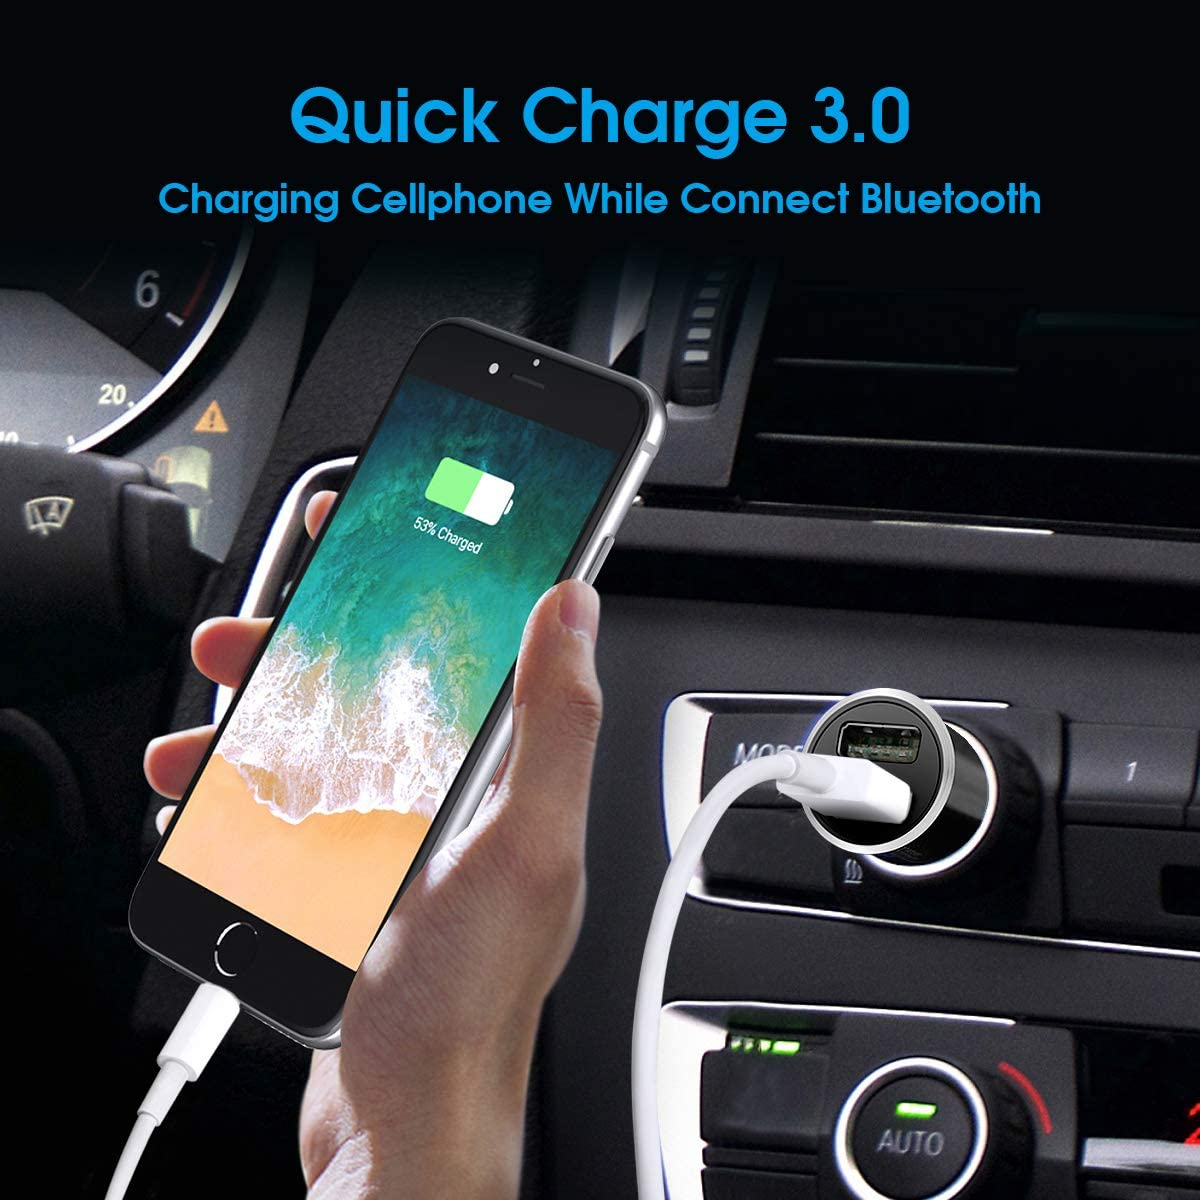 Hands-Free Calling Bluetooth Car Aux Adapter Cool Top Gadgets for Men Women Under 20 Dollars,Christmas Unique Gifts,TOPOINT Car Stereo Receiver with Built-in Microphone Bluetooth Receiver